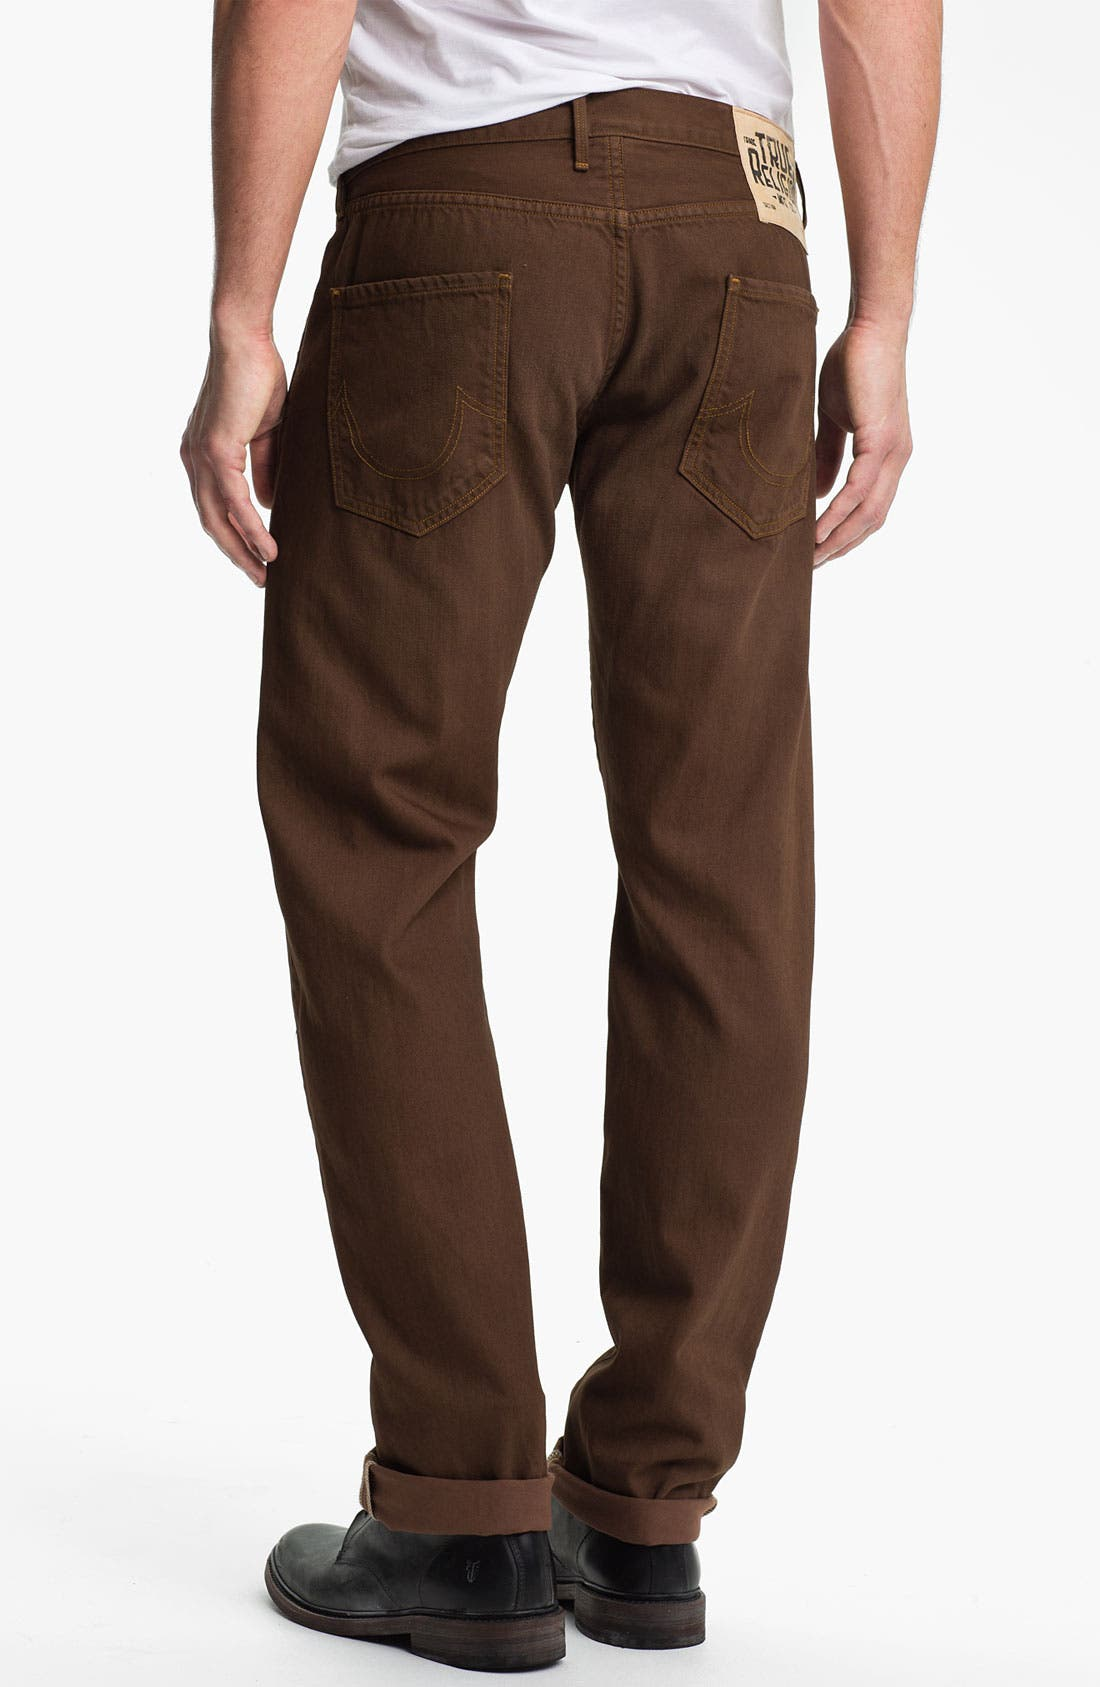 Alternate Image 1 Selected - True Religion Brand Jeans 'Geno Blue Collar Crossroads' Slim Straight Leg Jeans (Kona Brown)